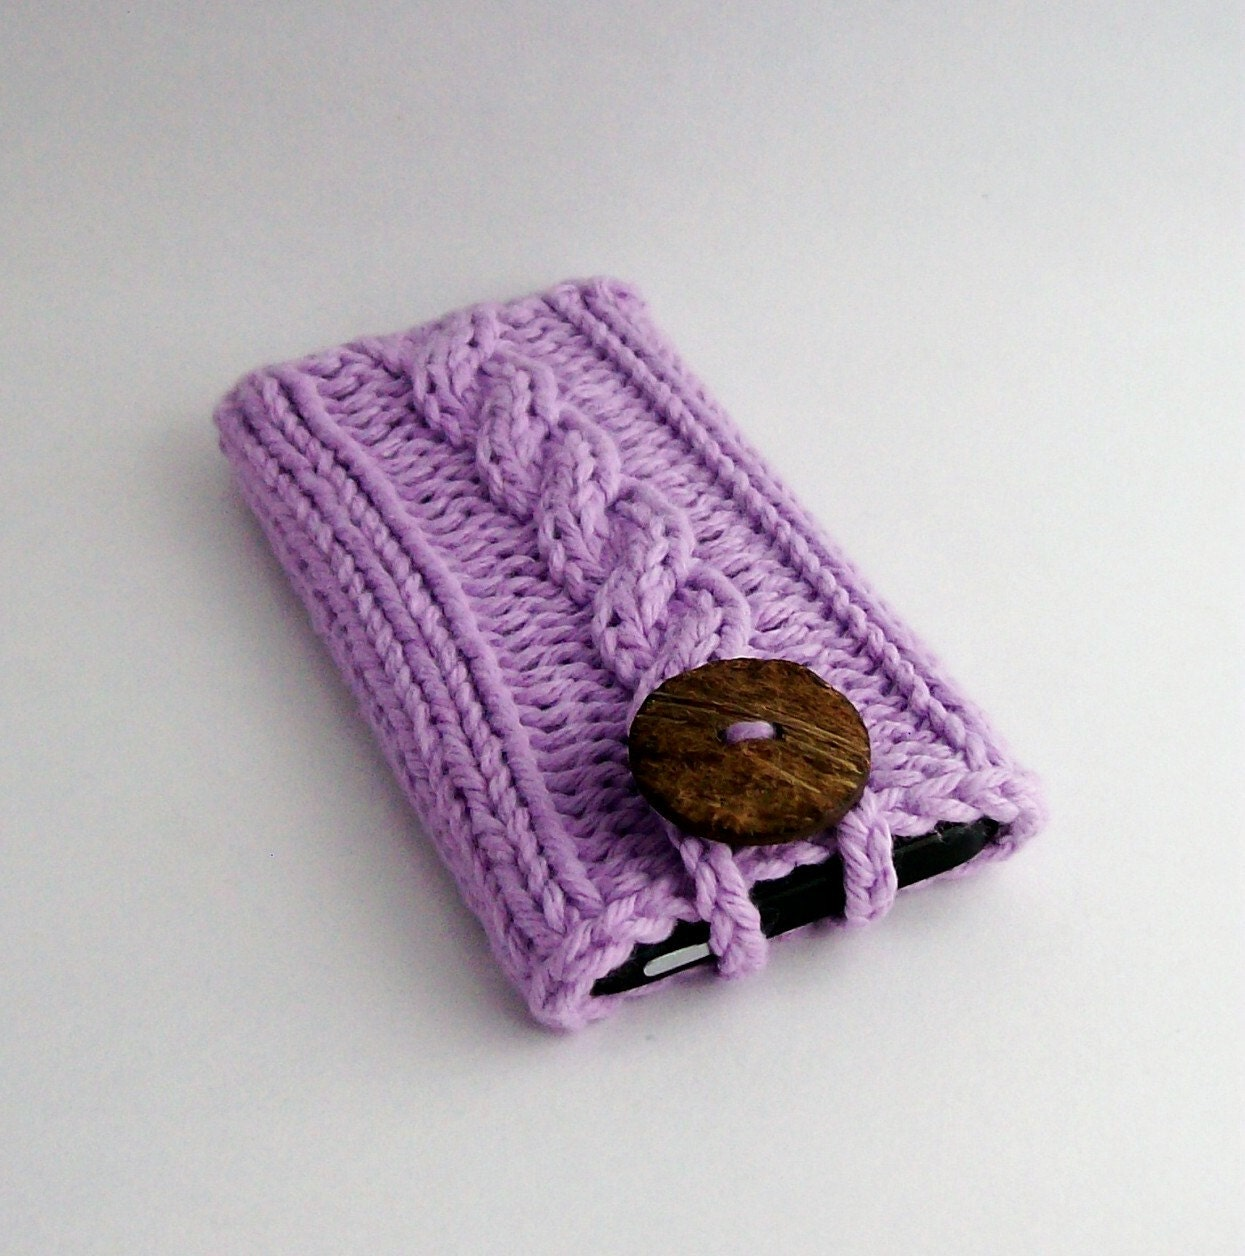 Hand Knit Mobile Cell Phone Cover for the iPhone 4 5 6 or 7